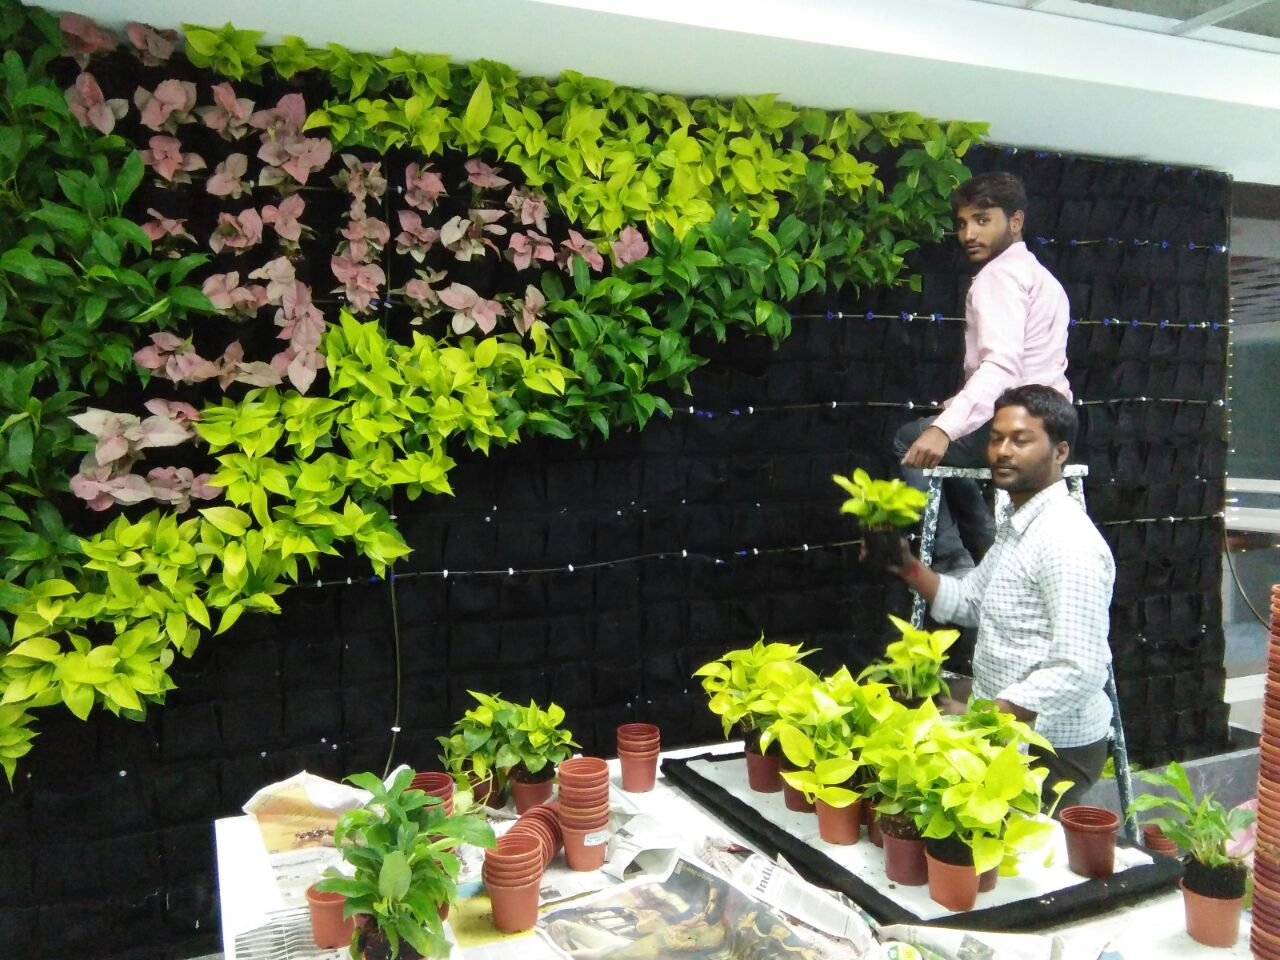 Vertikal Gardinen Vertical Gardens Bangalore Green Walls India Lifewall